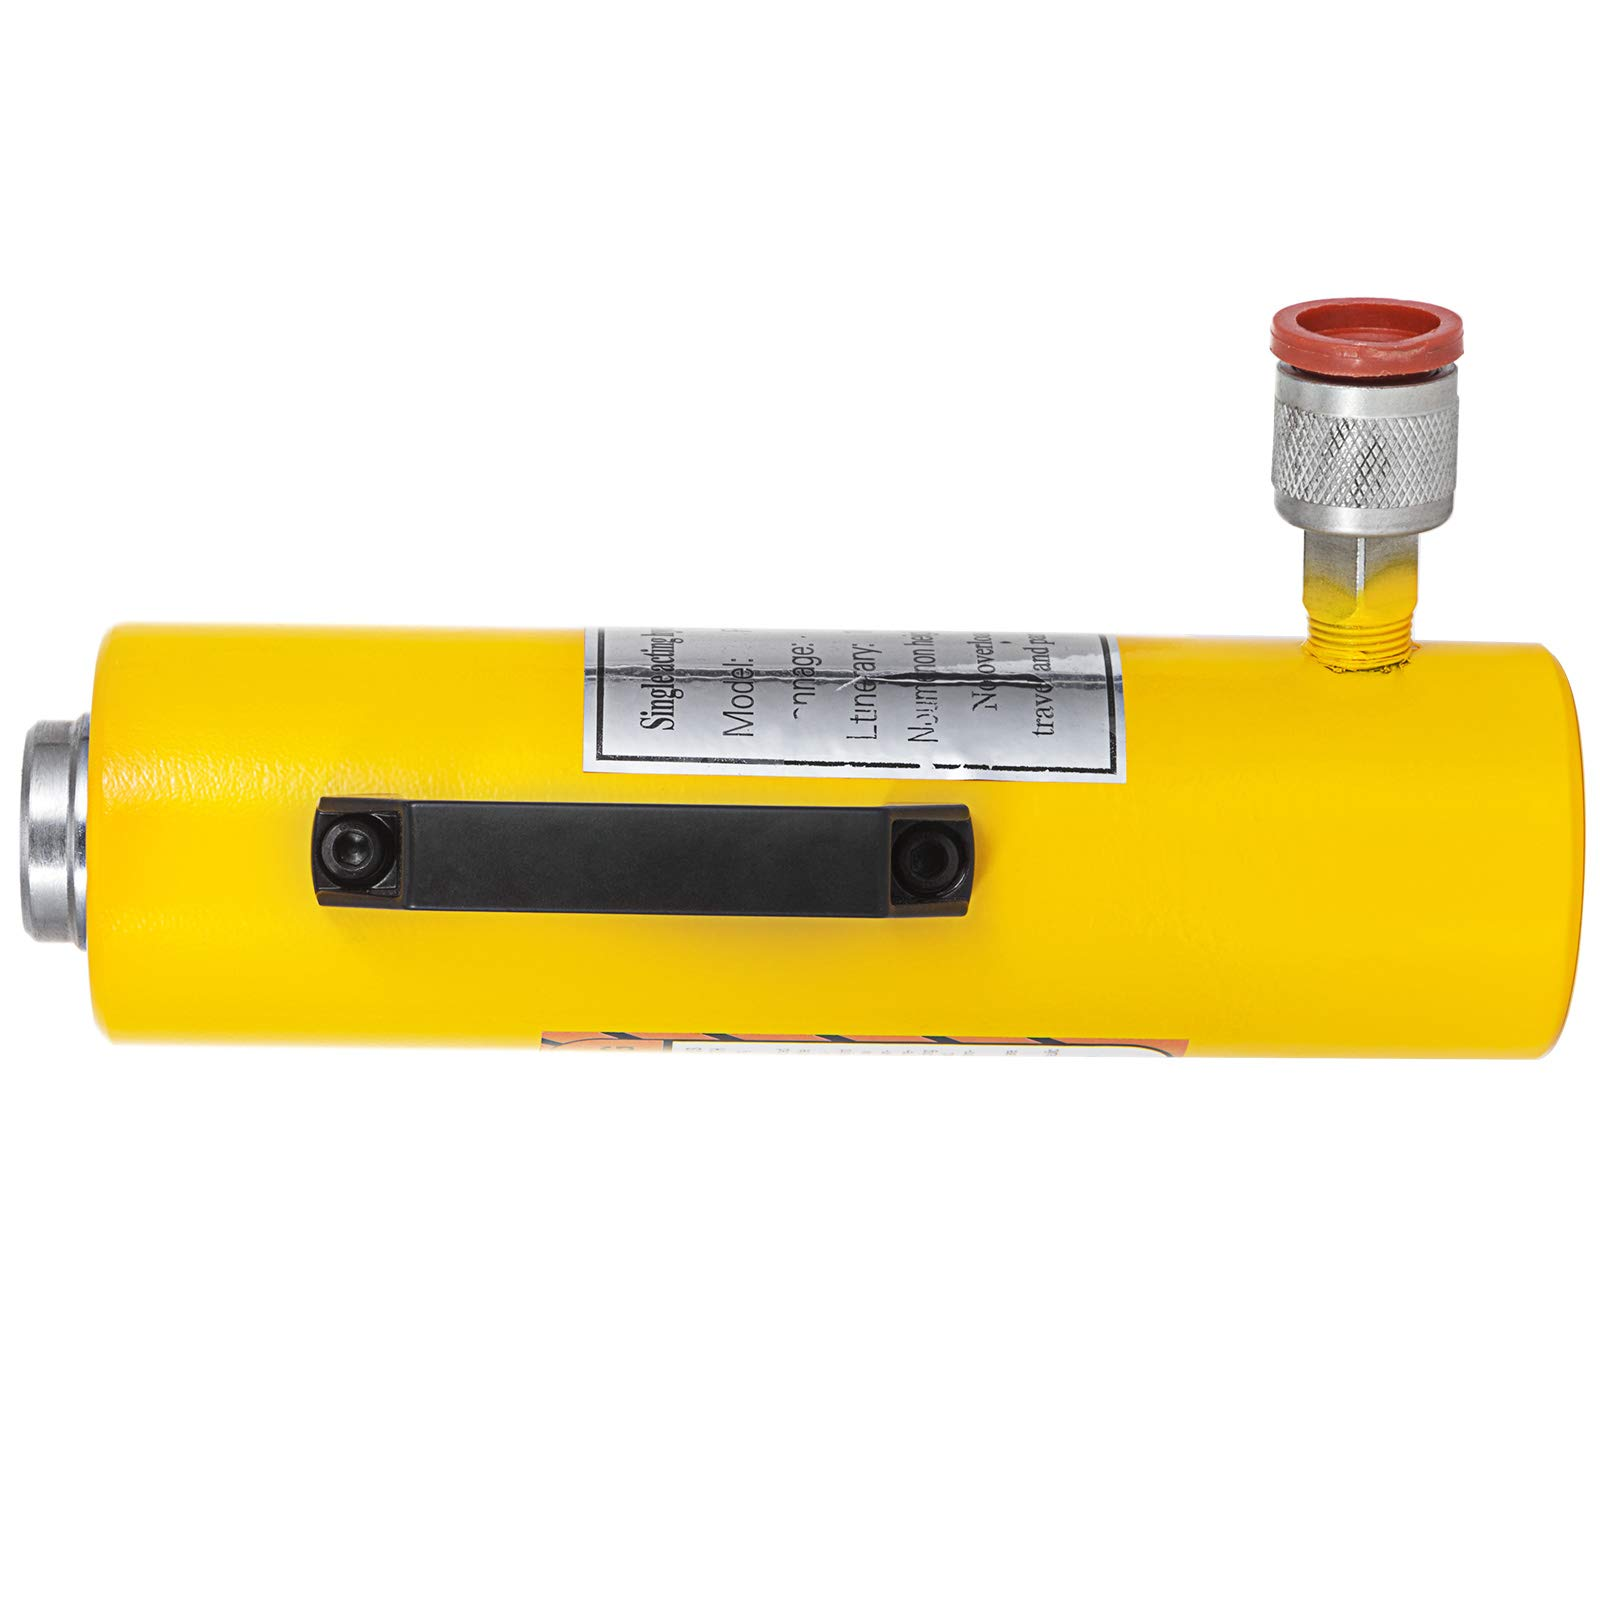 Mophorn 10T 6'' Stroke Hydraulic Cylinder Jack Solid Single Acting Hydraulic Ram Cylinder 150mm Hydraulic Lifting Cylinders for Riggers Fabricators (10T 6'') by Mophorn (Image #5)